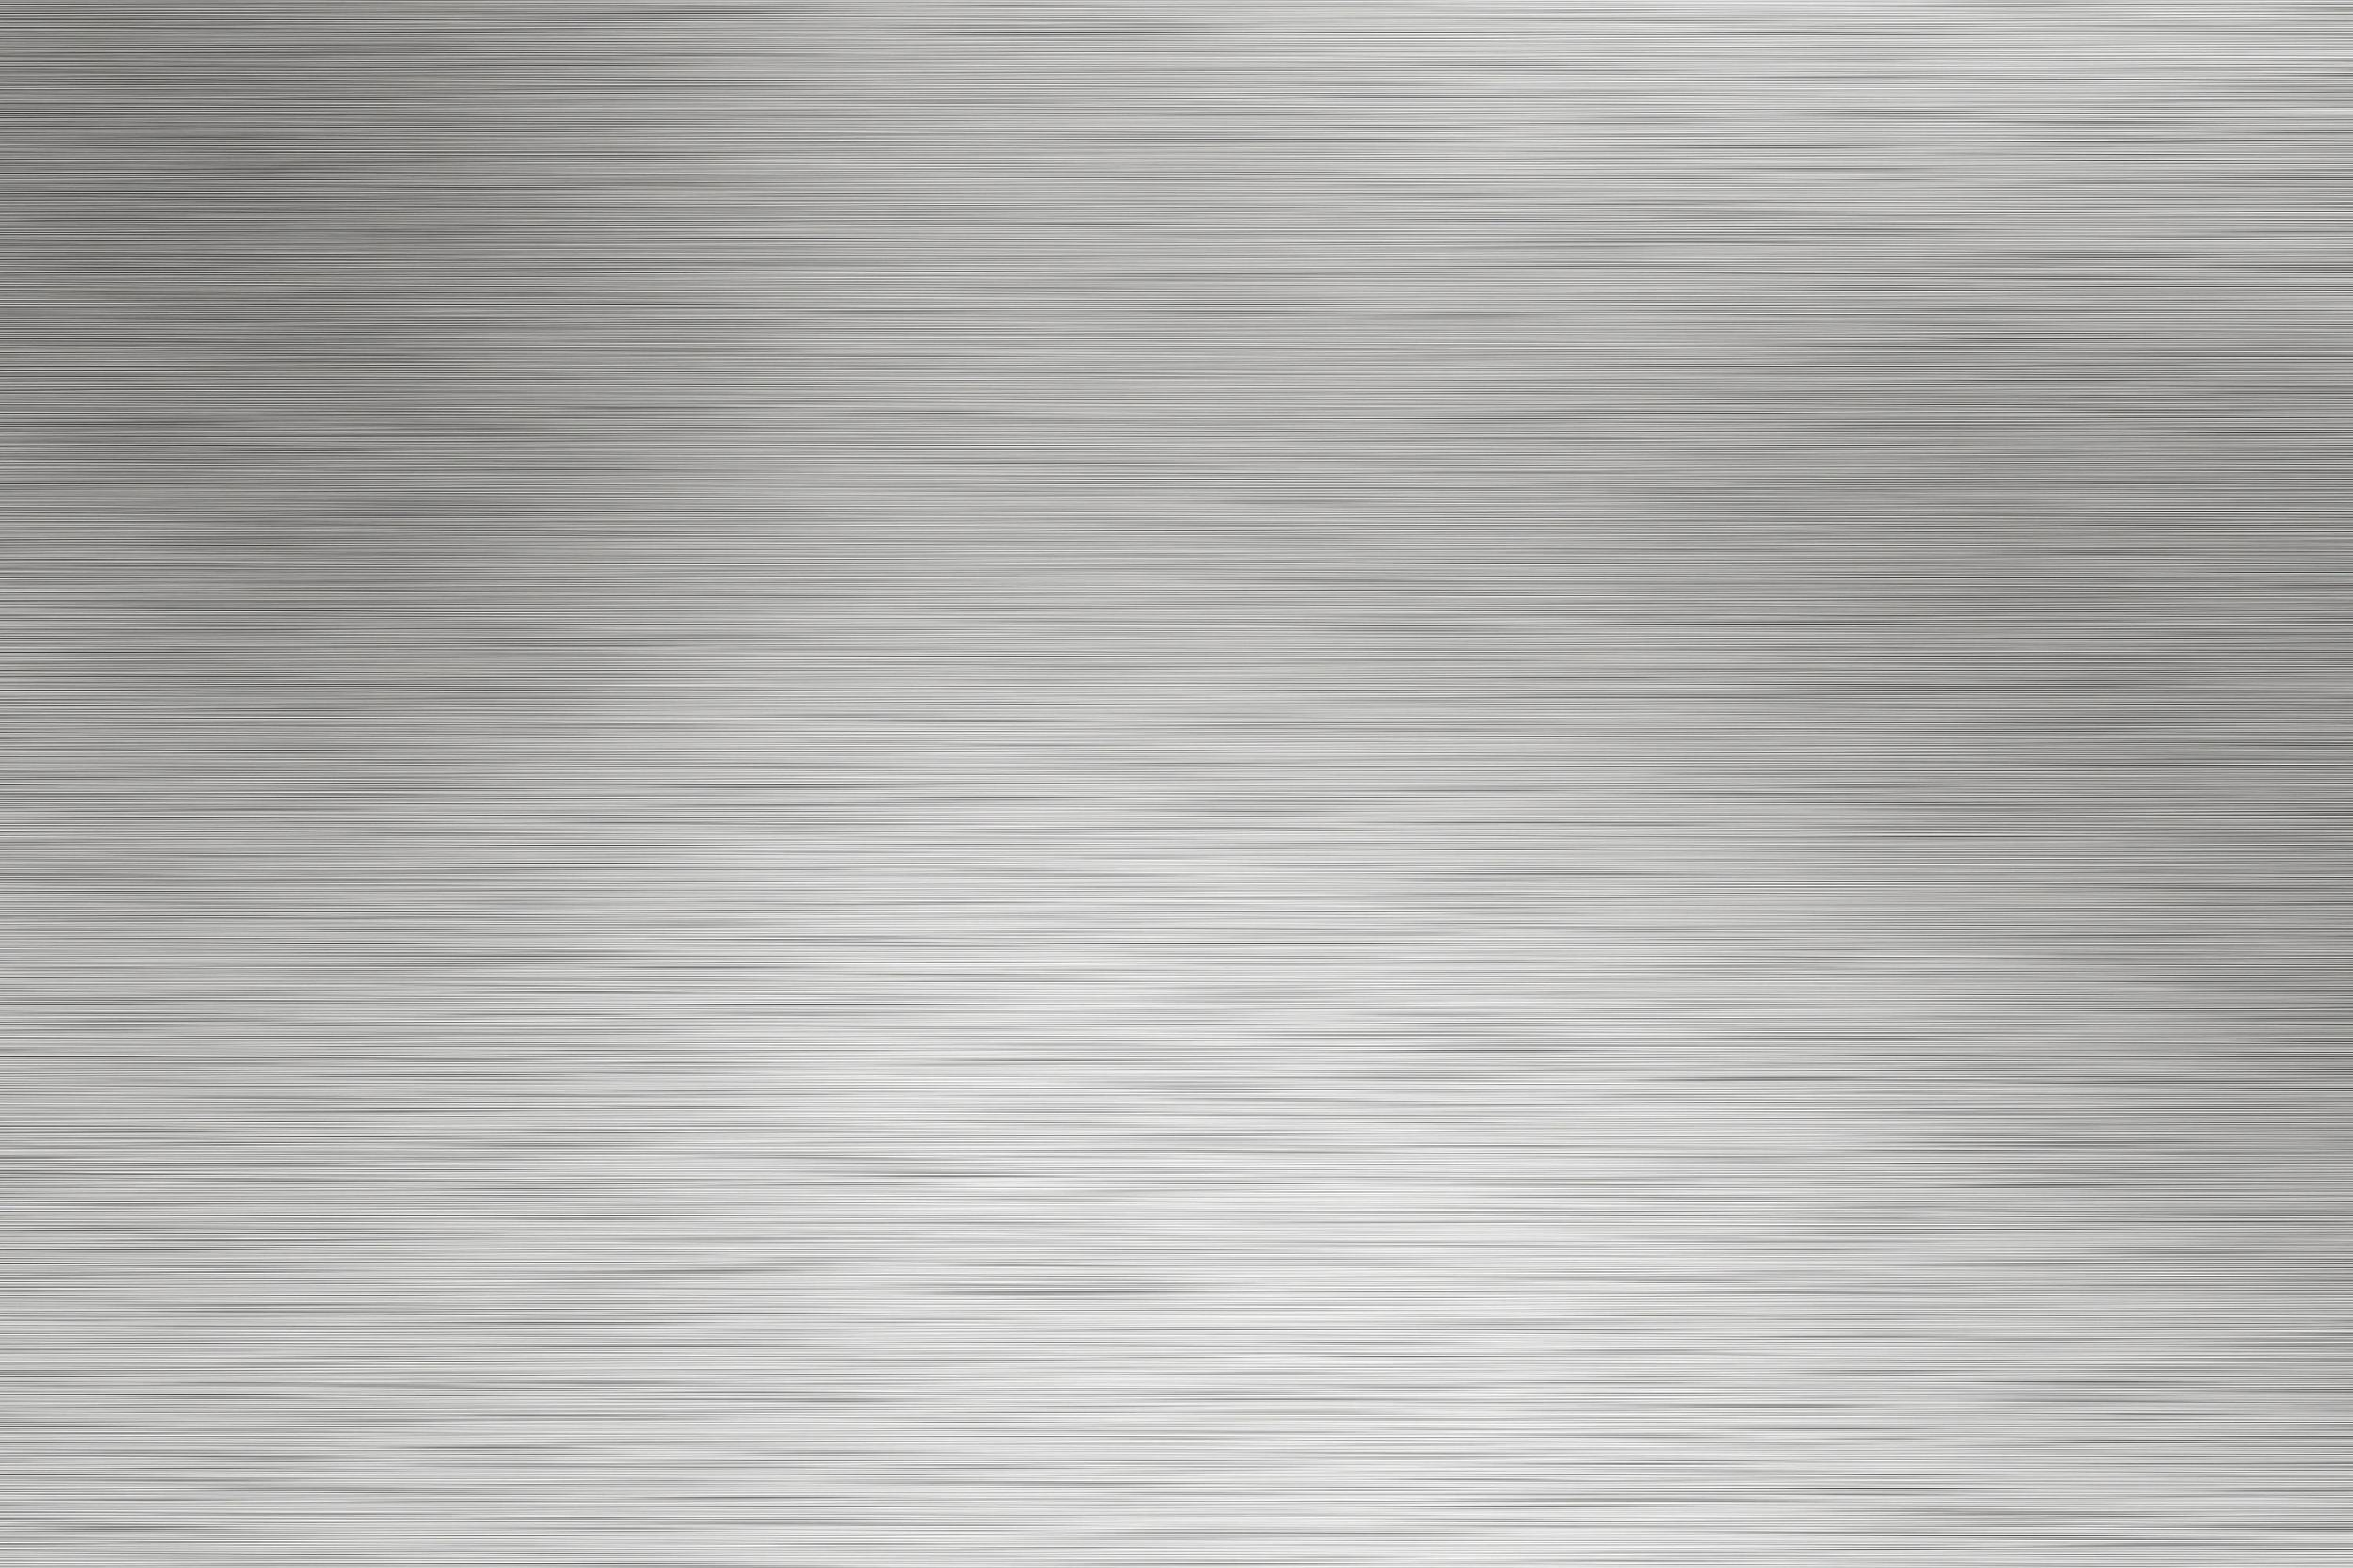 Hd Silver Background Posted By Michelle Thompson